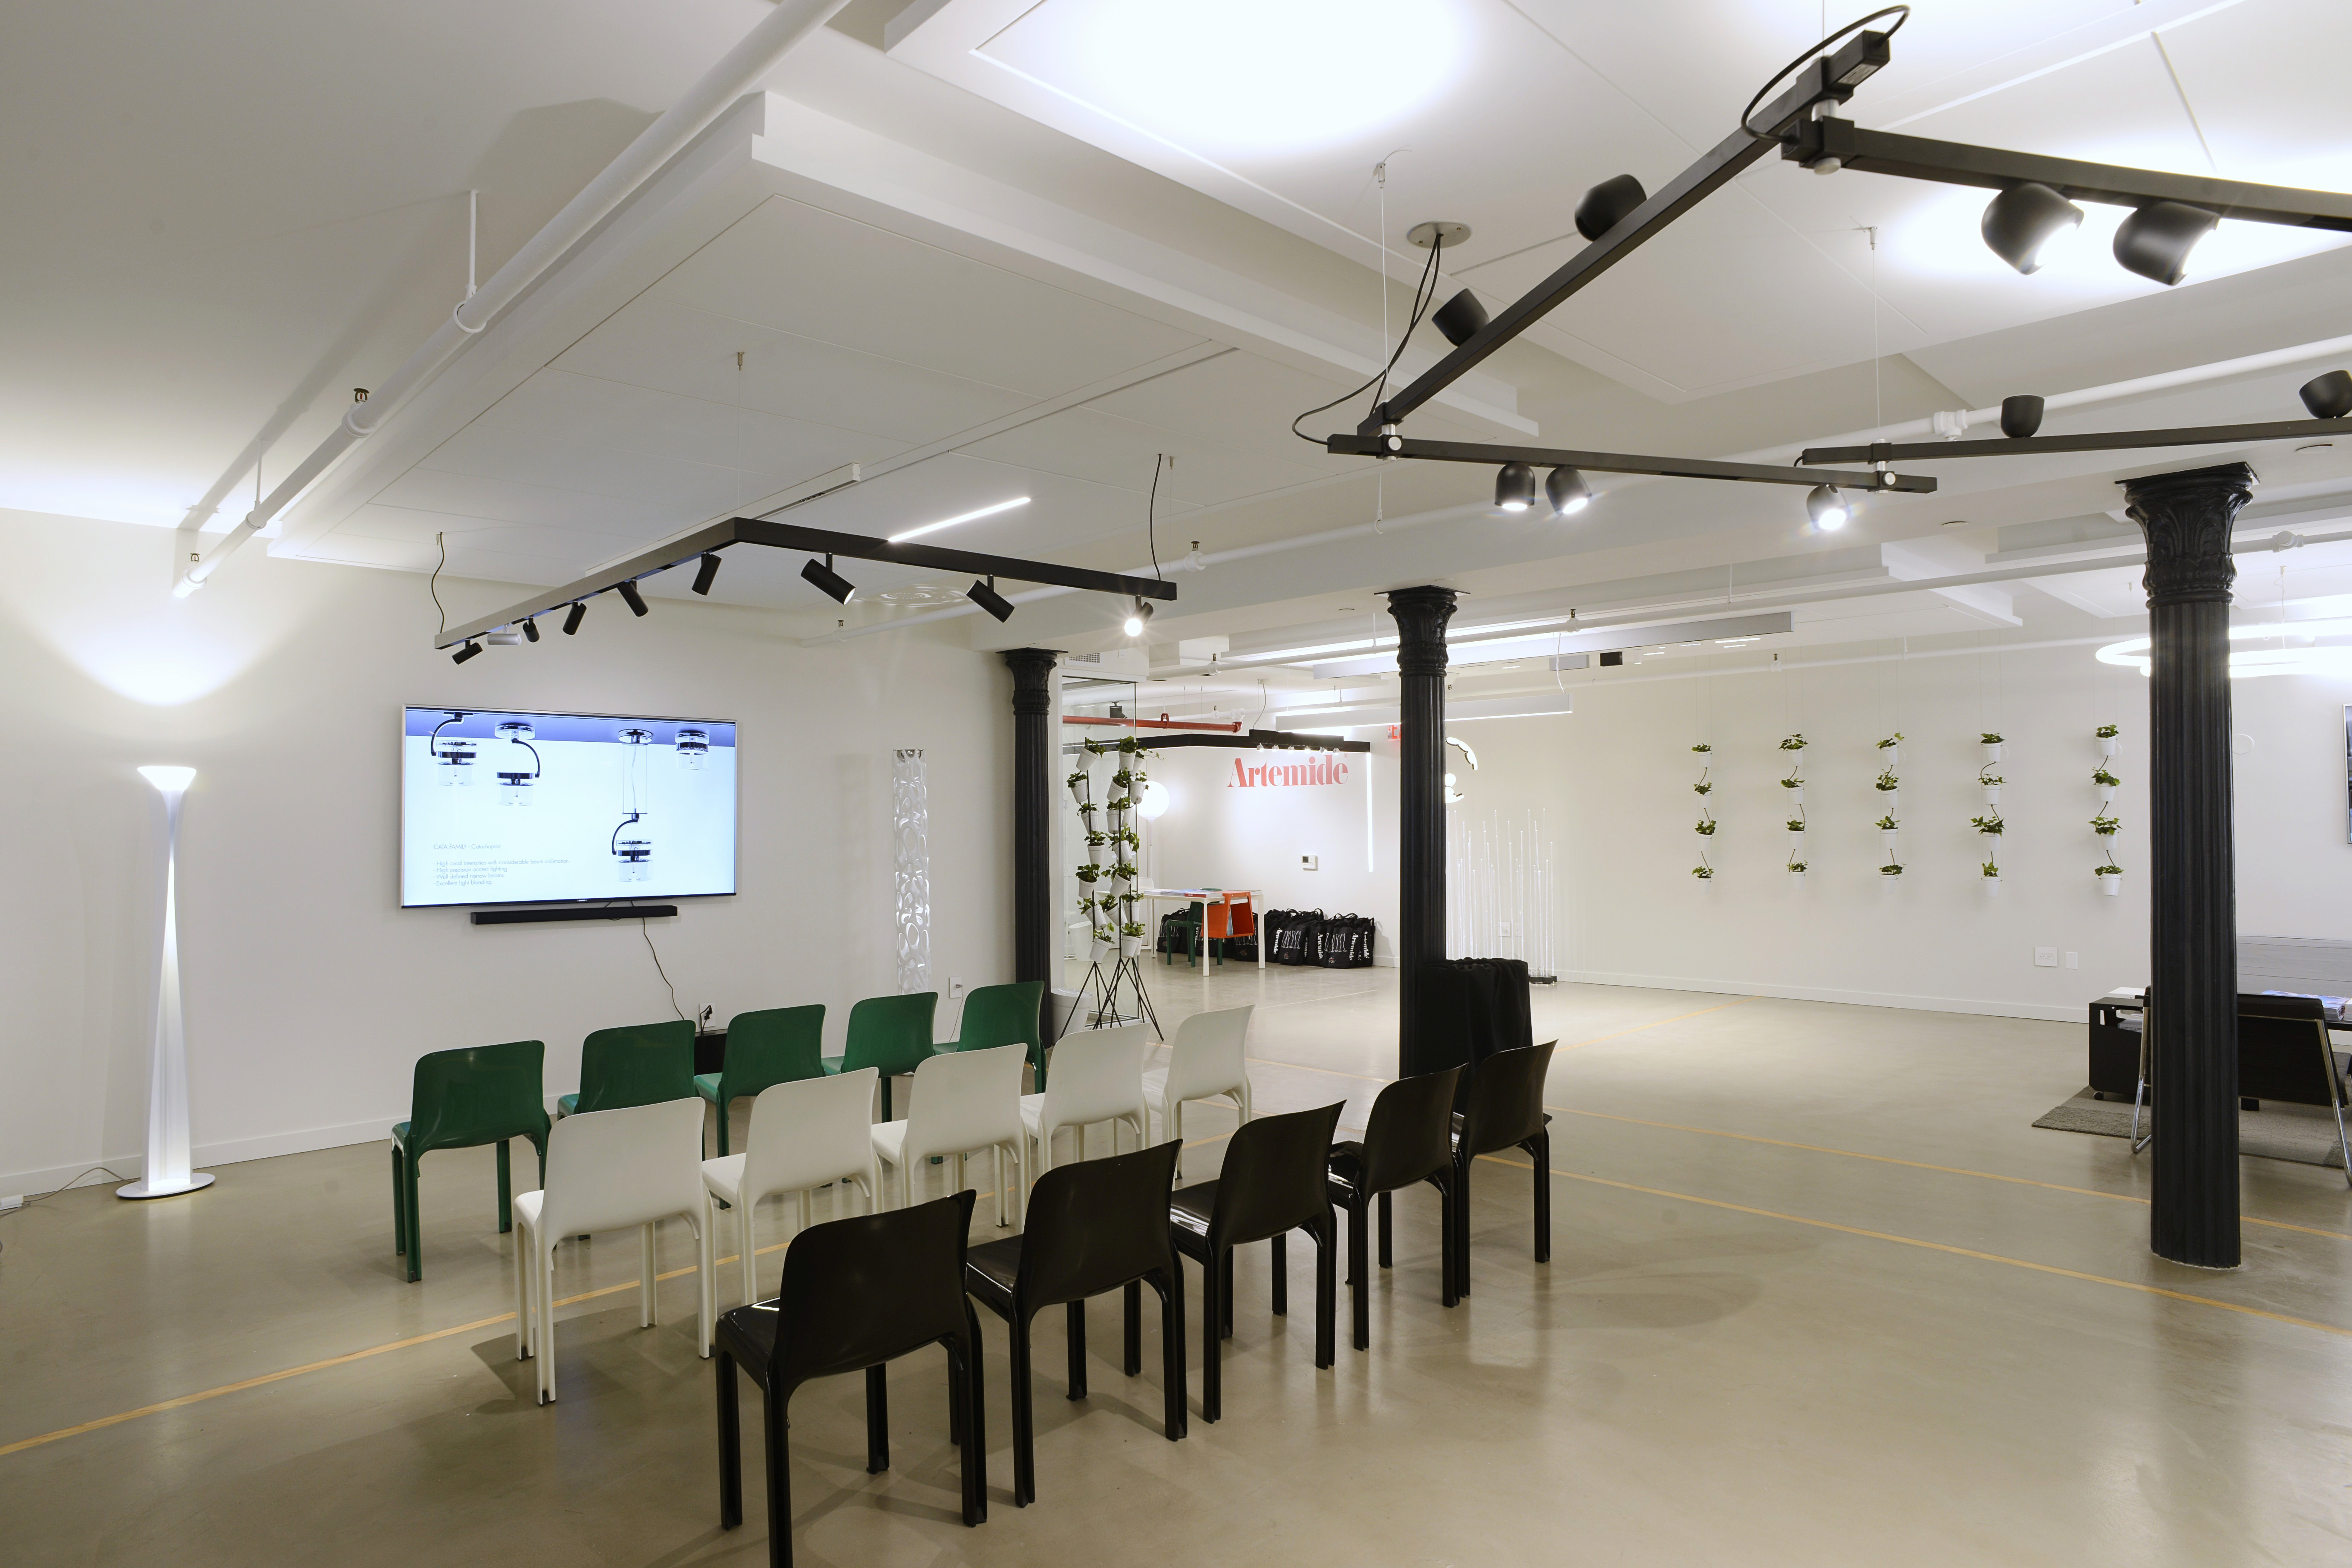 Photo by GION Studio & ARTEMIDE OPENS LIGHTING CONSULTANCY u0026 TRAINING CENTER IN NEW YORK ...